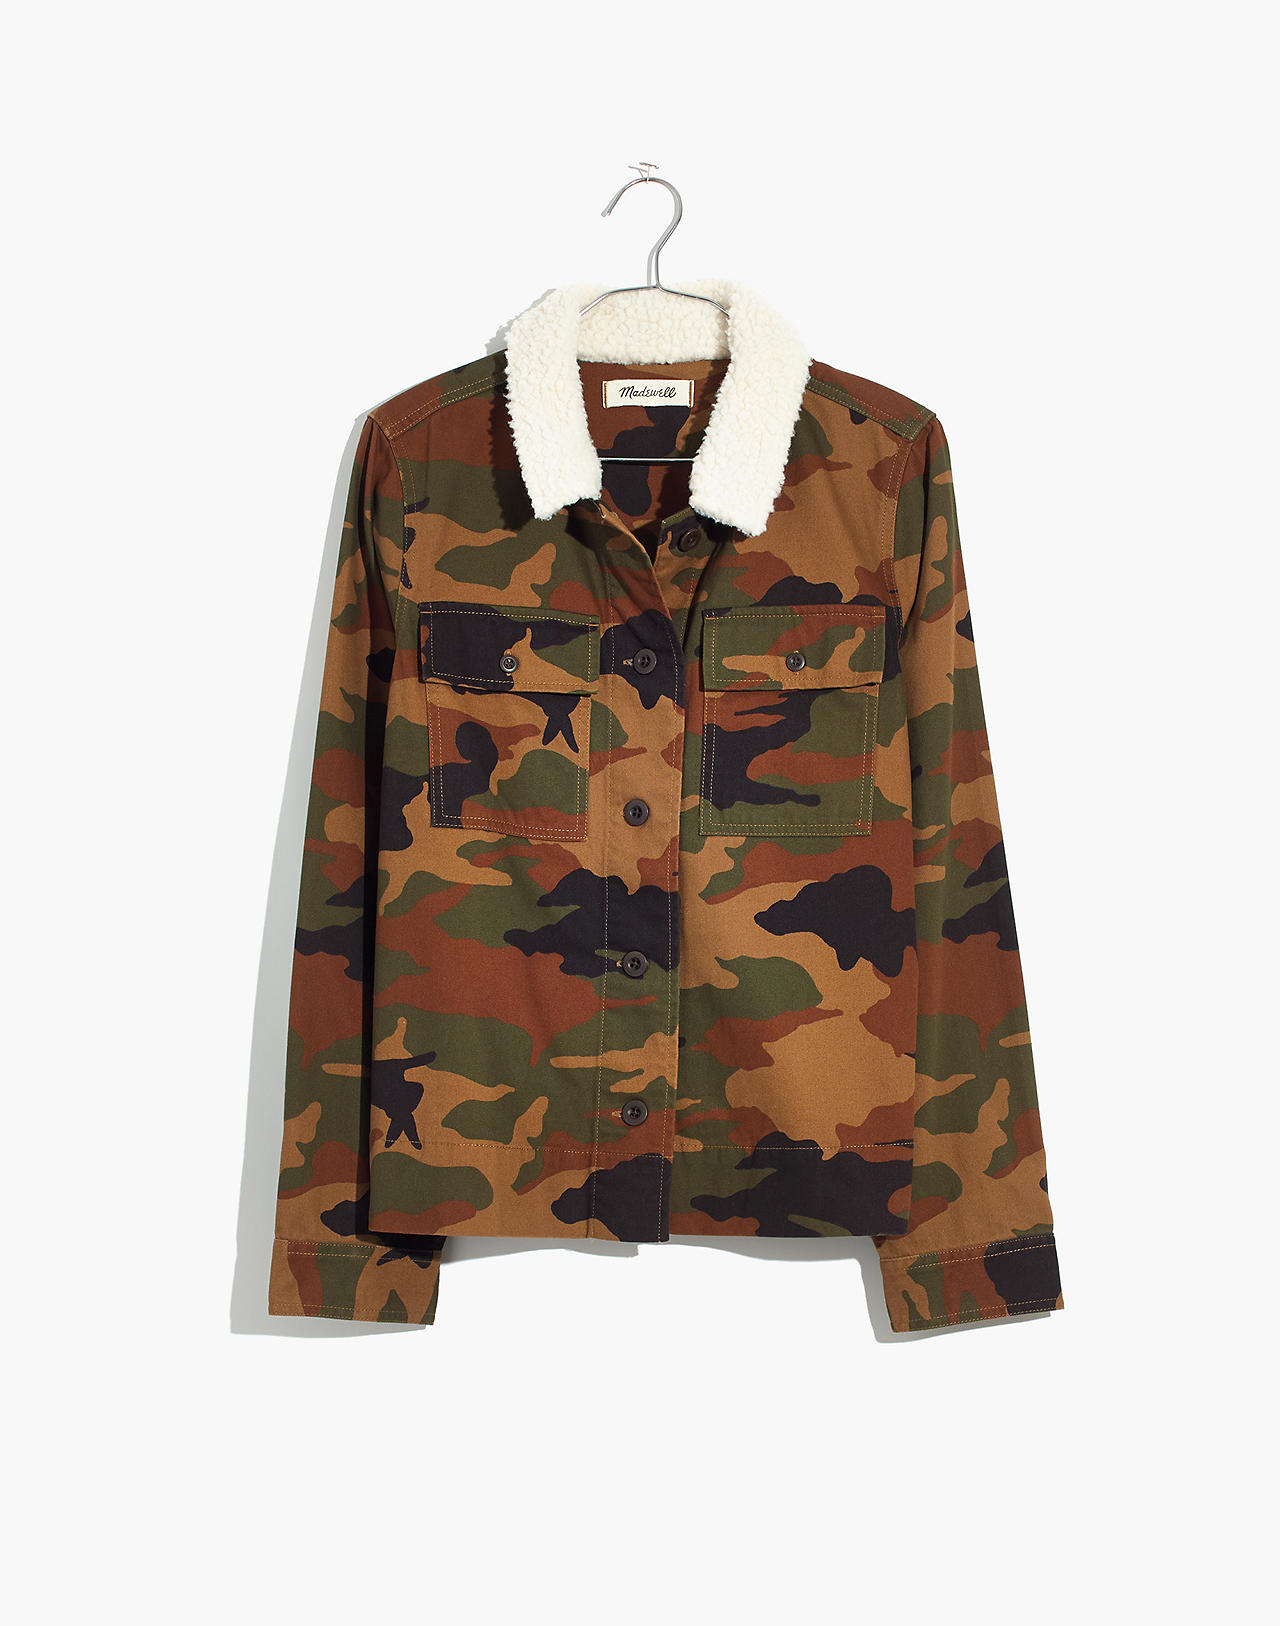 2db9f2d26 Northward Cropped Army Jacket in Cottontail Camo  Sherpa Edition